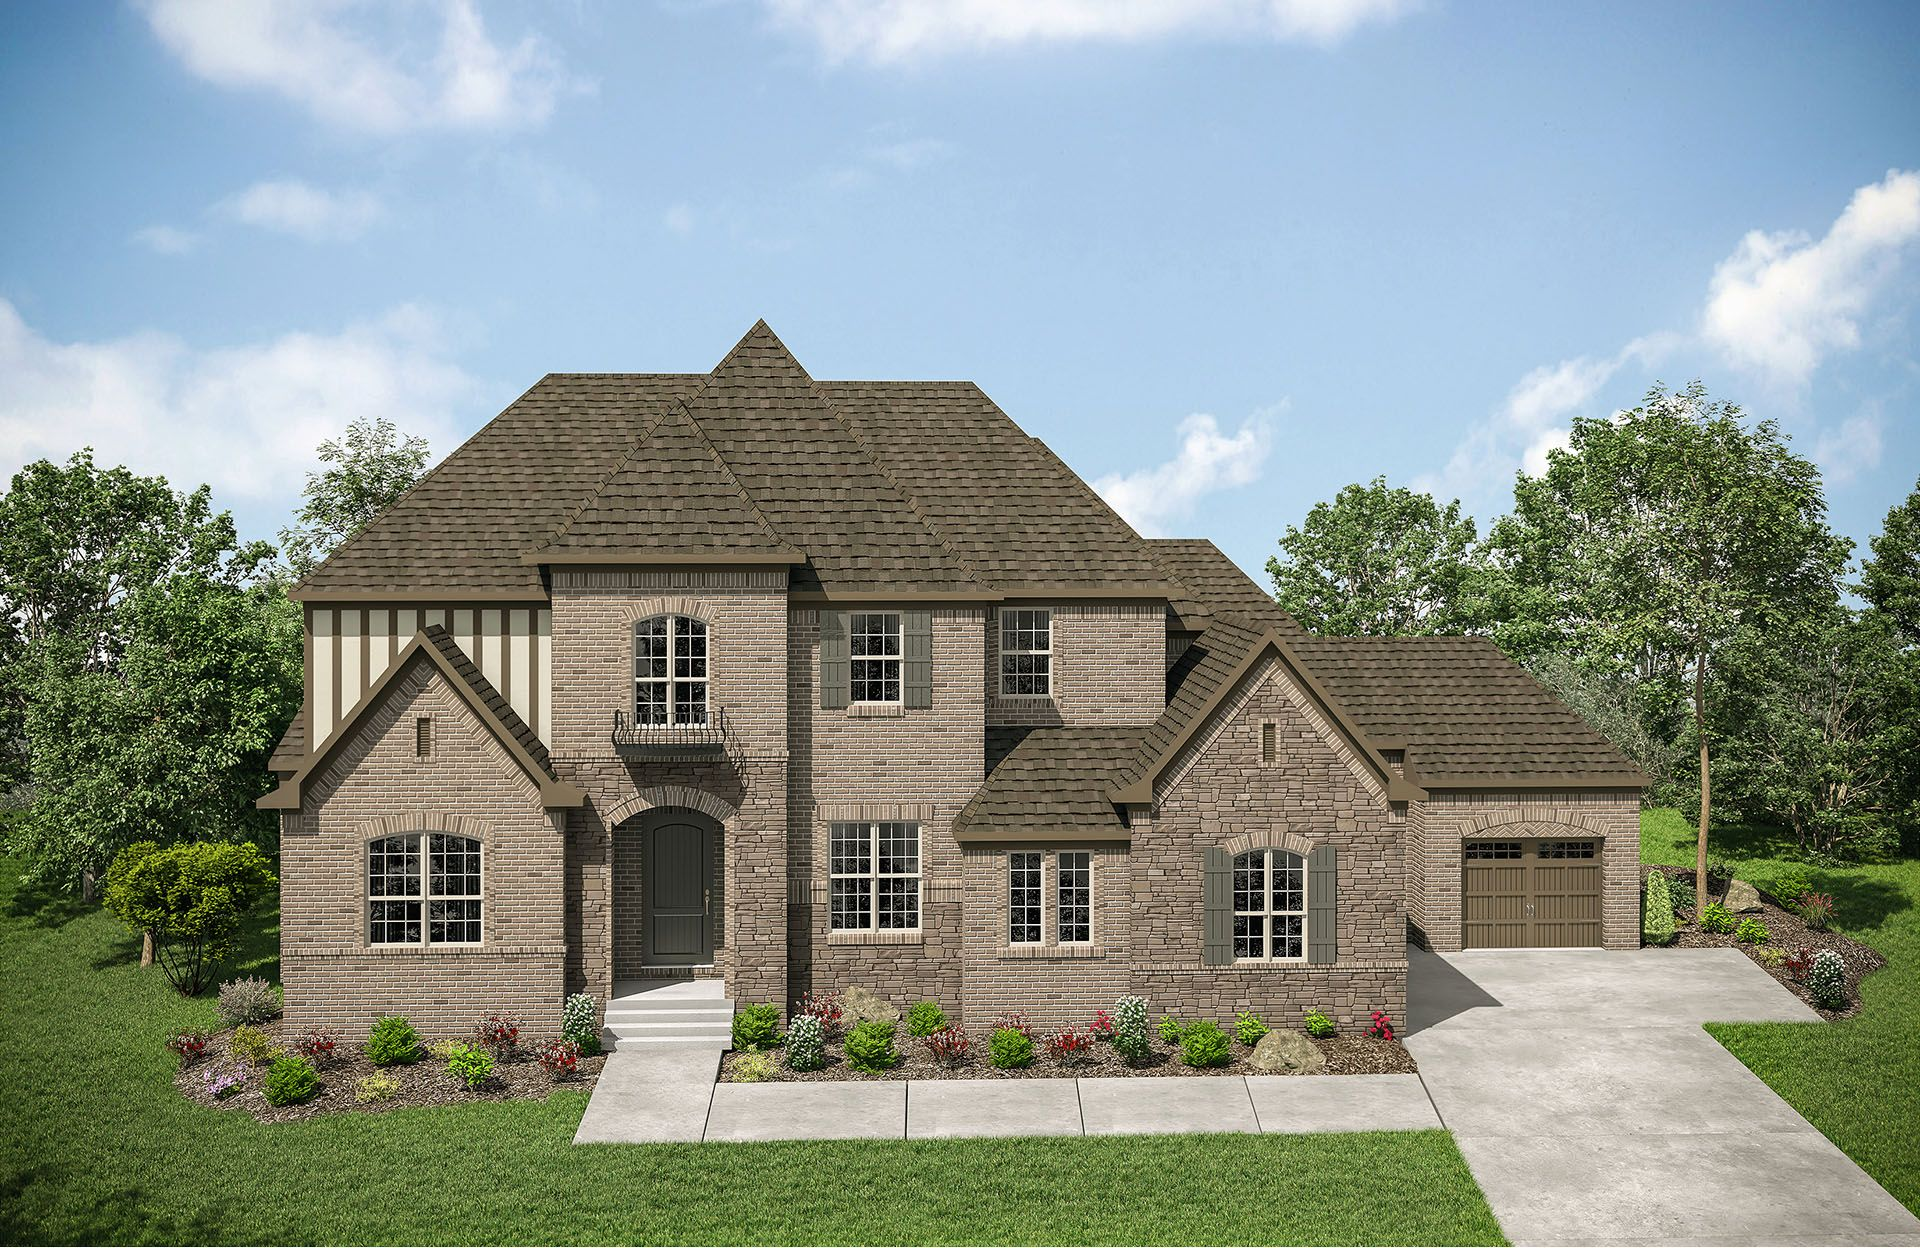 Single Family for Active at Kings' Chapel - Colinas Ii 4071 Old Light Circle Arrington, Tennessee 37014 United States